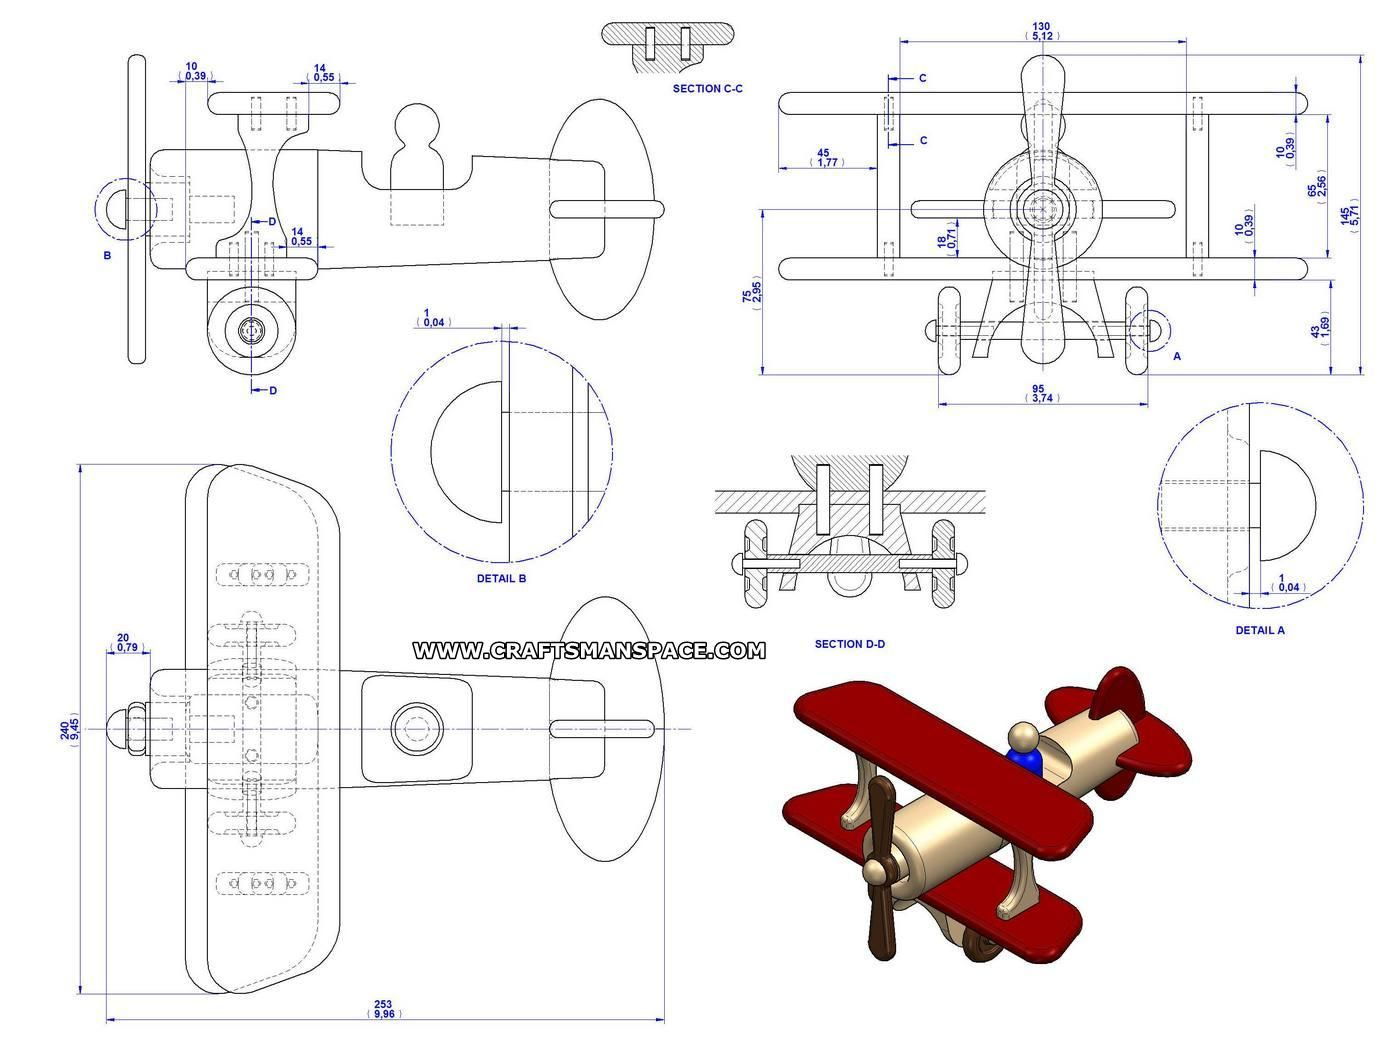 wooden toy plans free pdf | discover woodworking projects | train